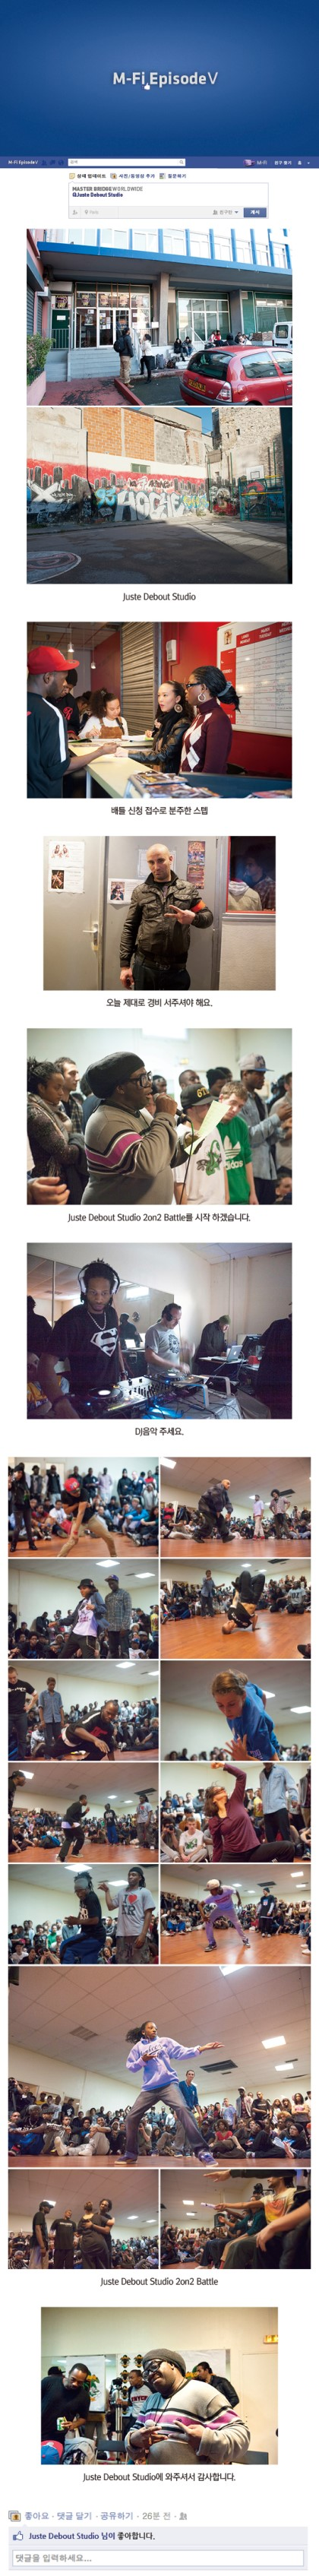 M-Fi《Episode》∥ Art & Culture // WORLD WIDE :: Juste Debout Studio : 네이버 블로그